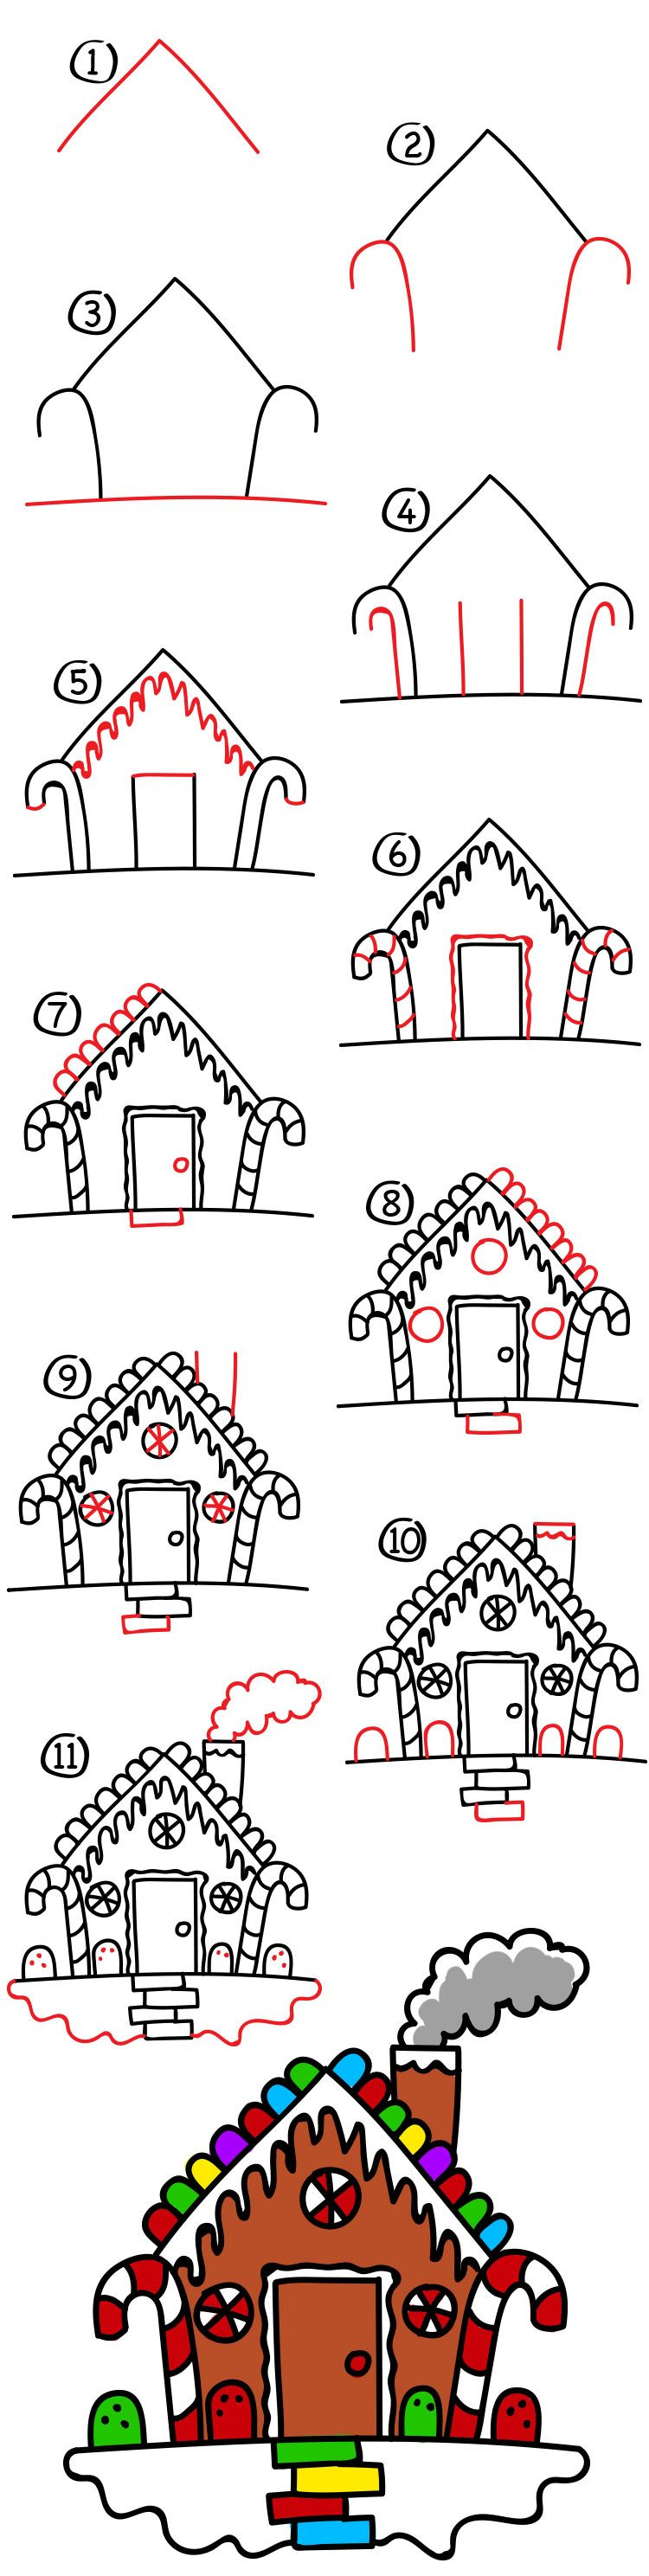 How To Draw A Gingerbread House   Art For Kids Hub